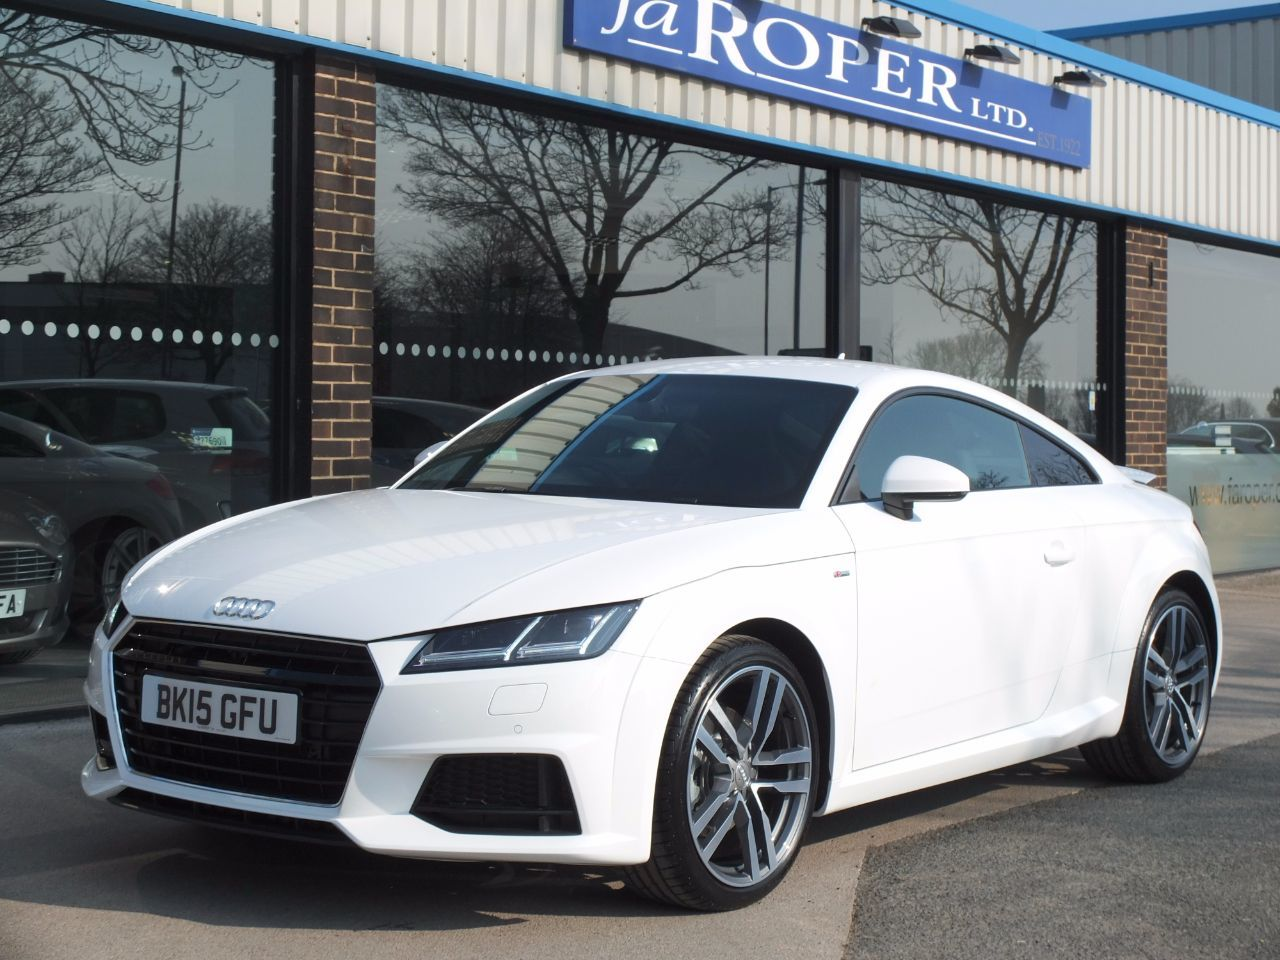 used audi tt 2 0 tdi ultra s line coupe 184ps for sale in. Black Bedroom Furniture Sets. Home Design Ideas